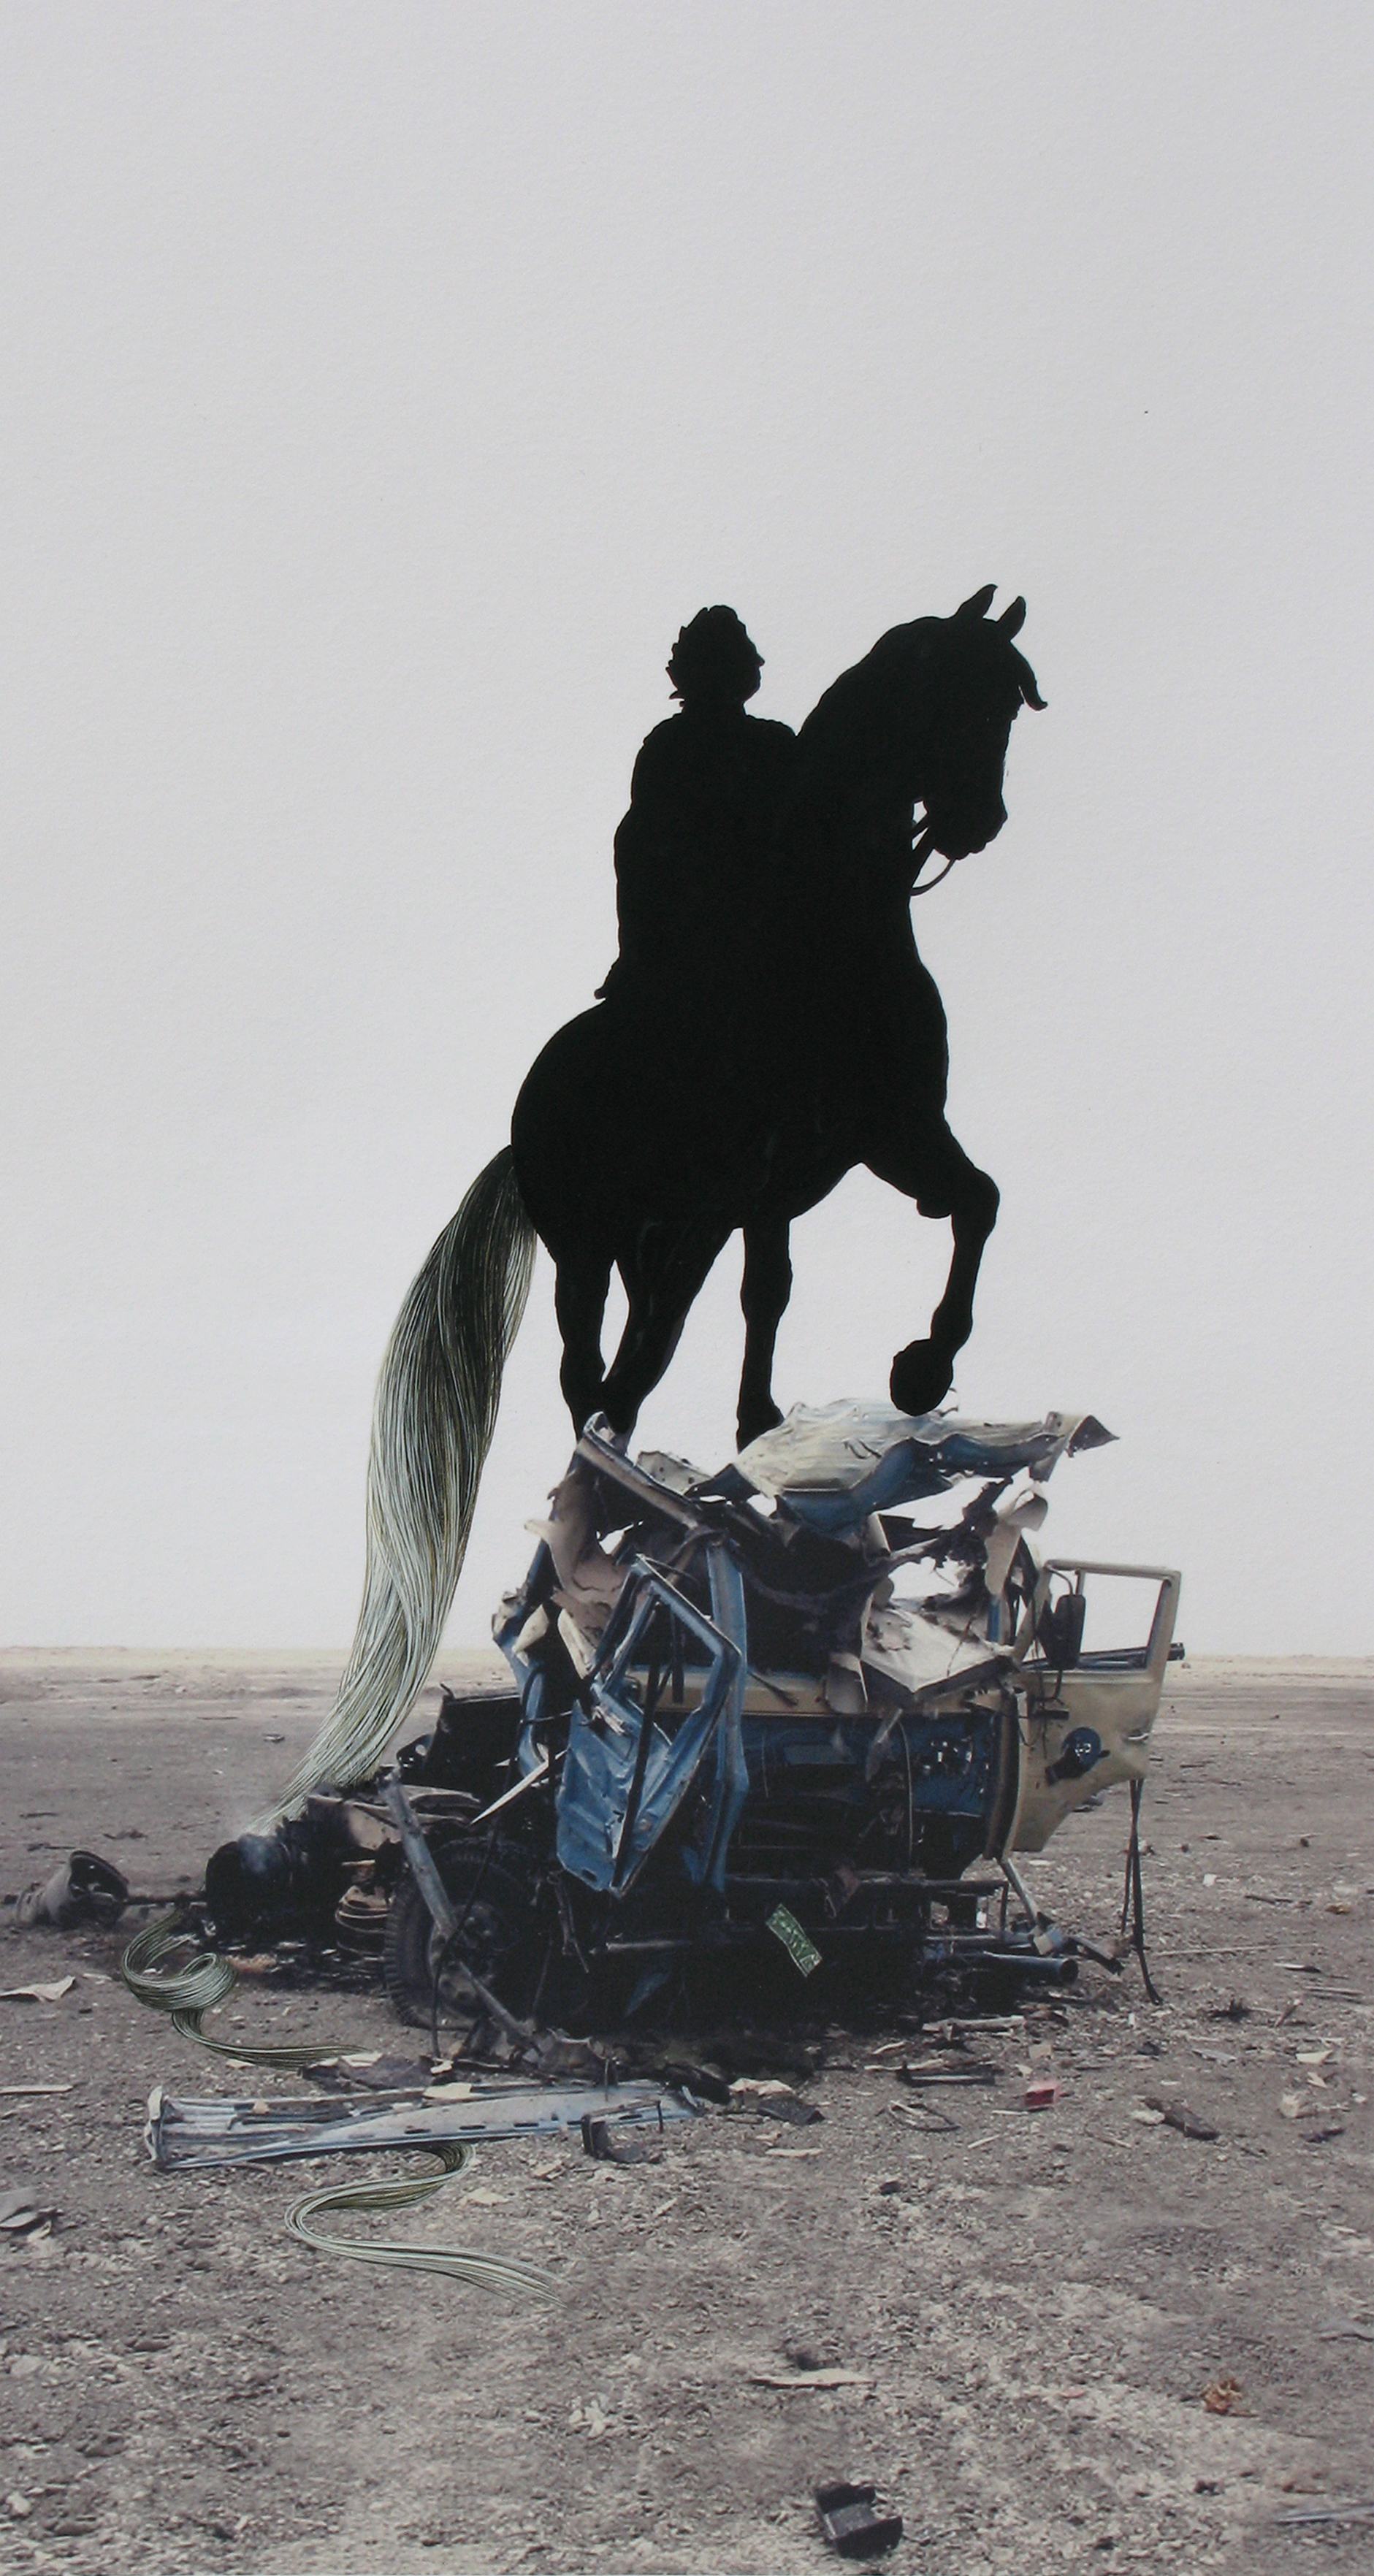 Equus: Iraq Truck Bomb with Frederik V, 2009